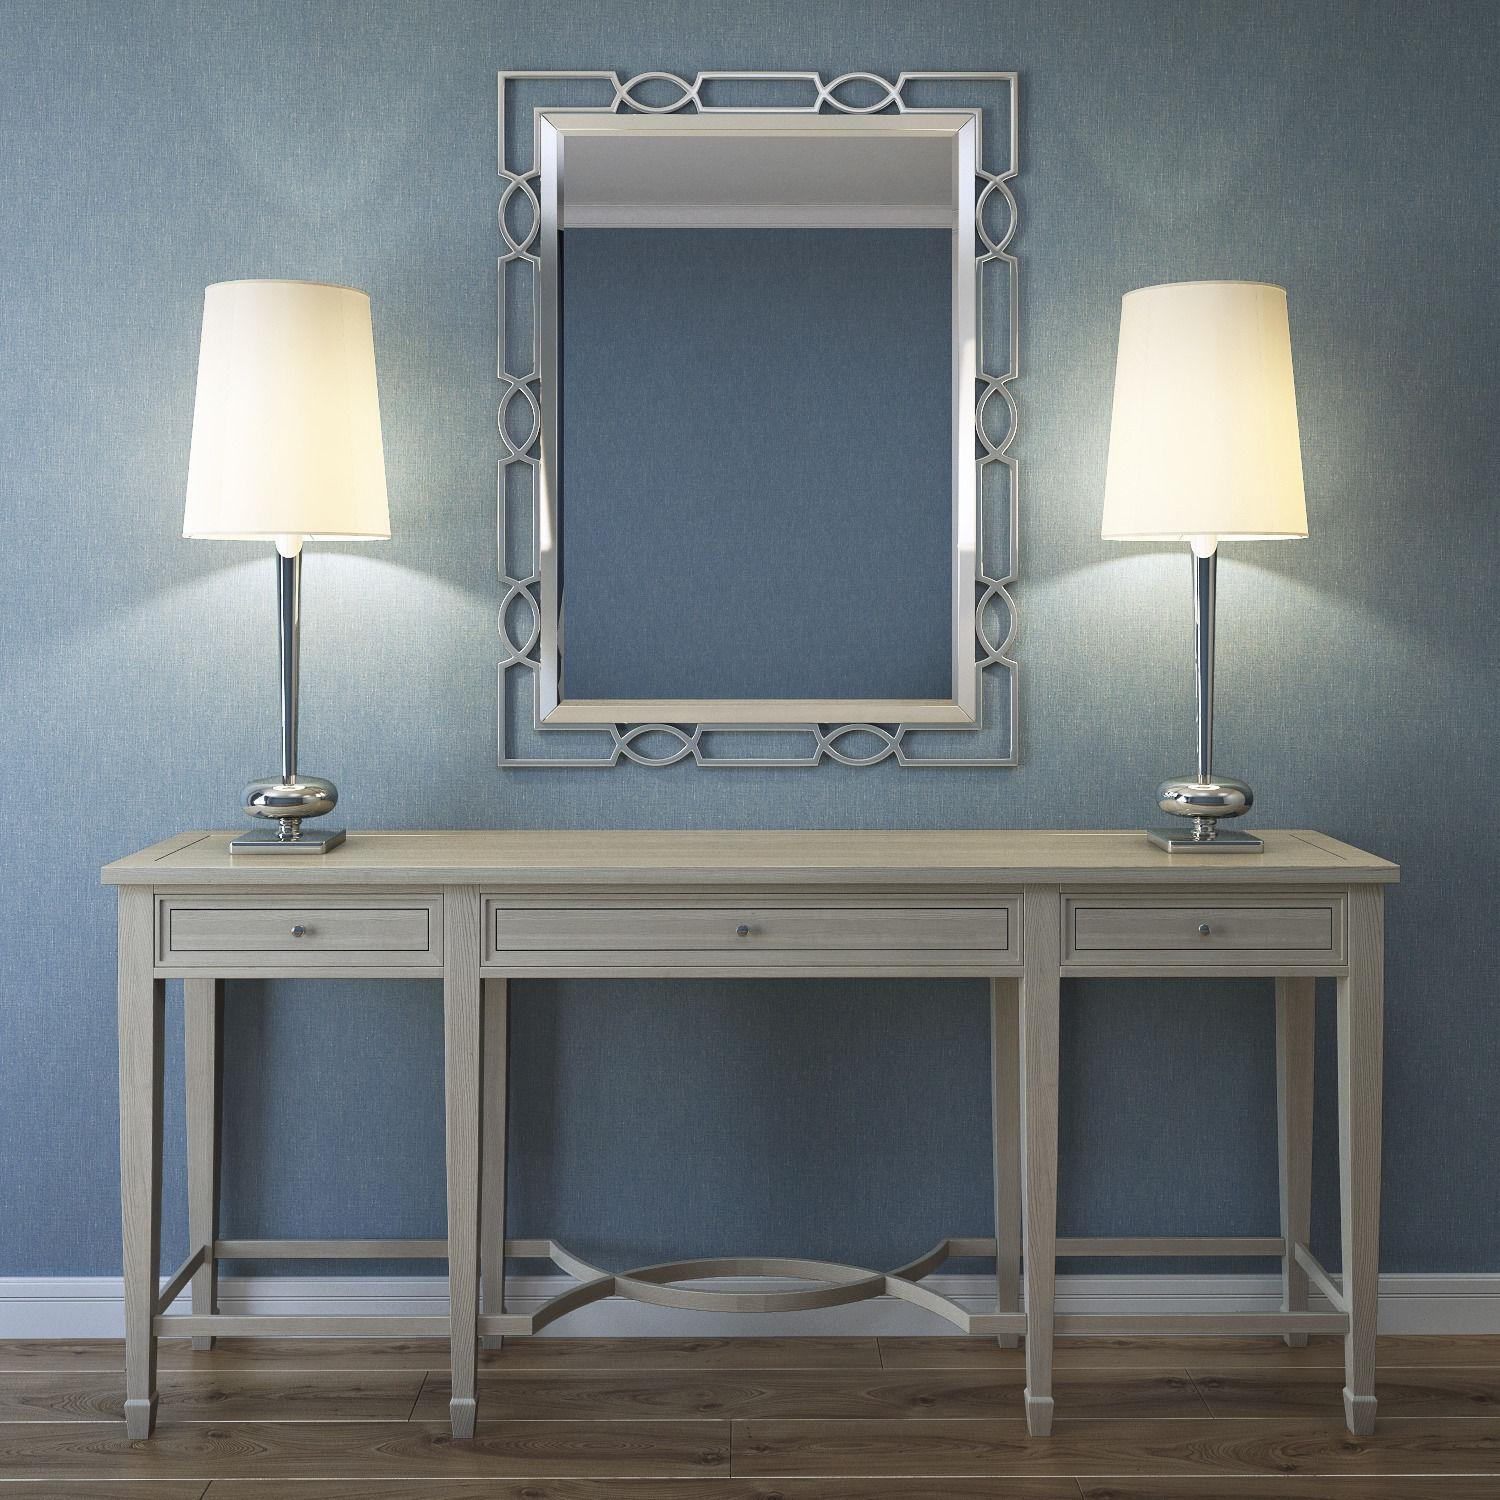 Bernhardt Criteria Console Table With The Mirror 3D Model Max Fbx With Regard To Bernhardt Console Tables (Image 1 of 20)